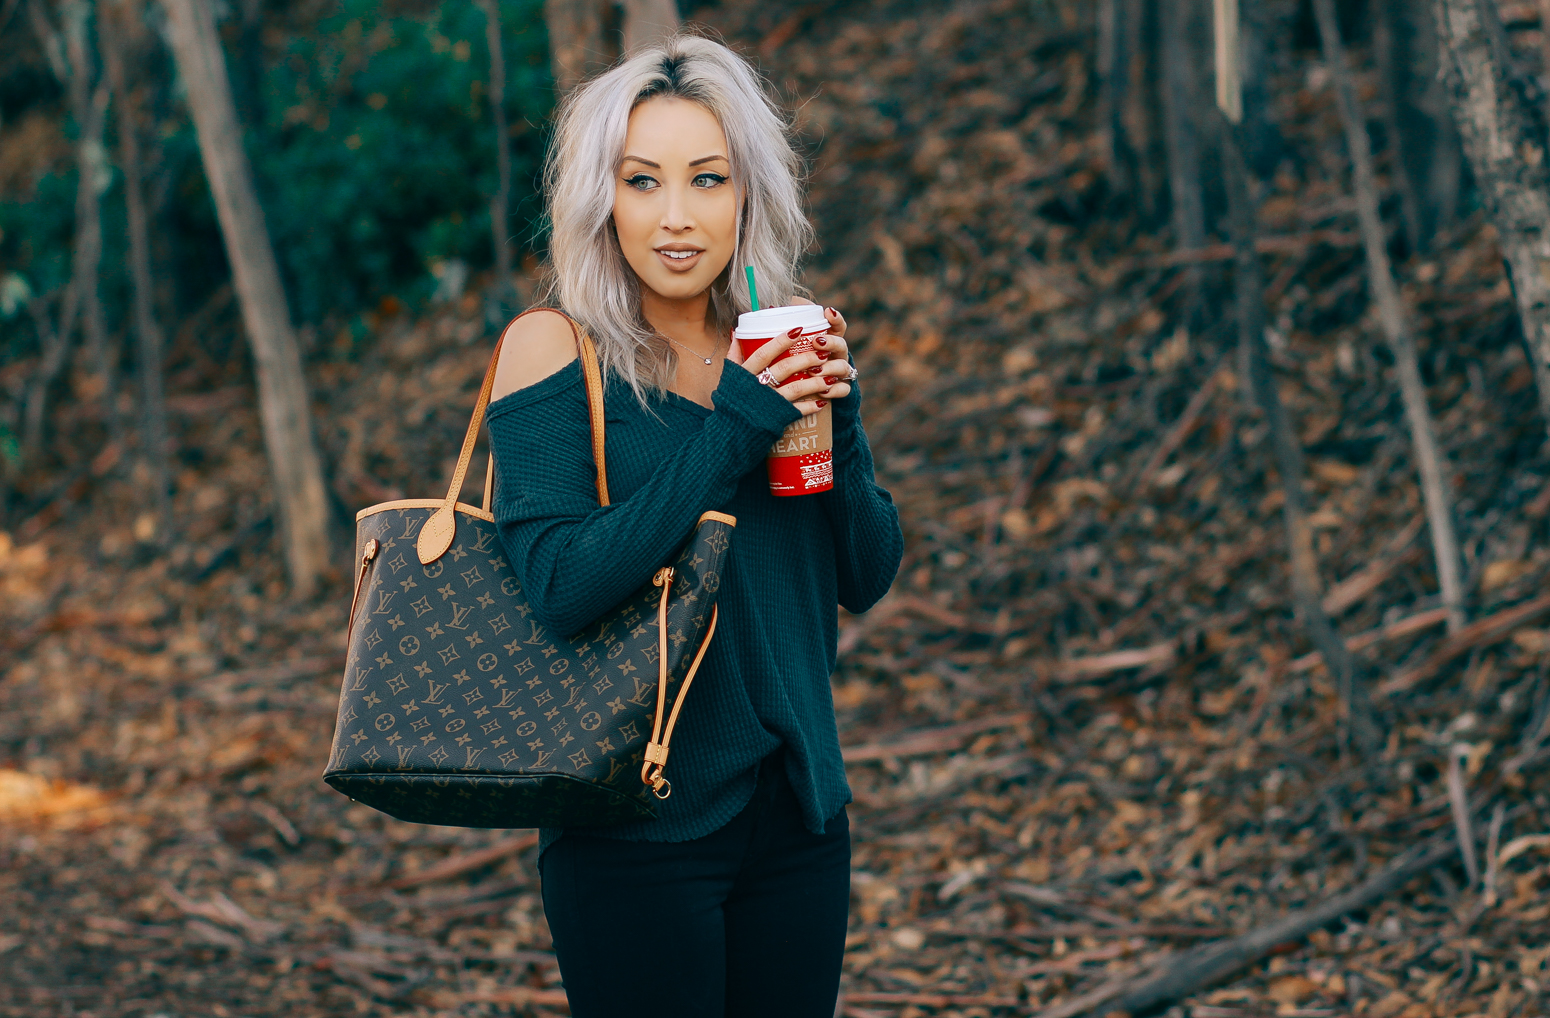 Blondie in the City | Cutout Shoulder Sweater from @ShopAtHer | Louis Vuitton Neverfull Bag